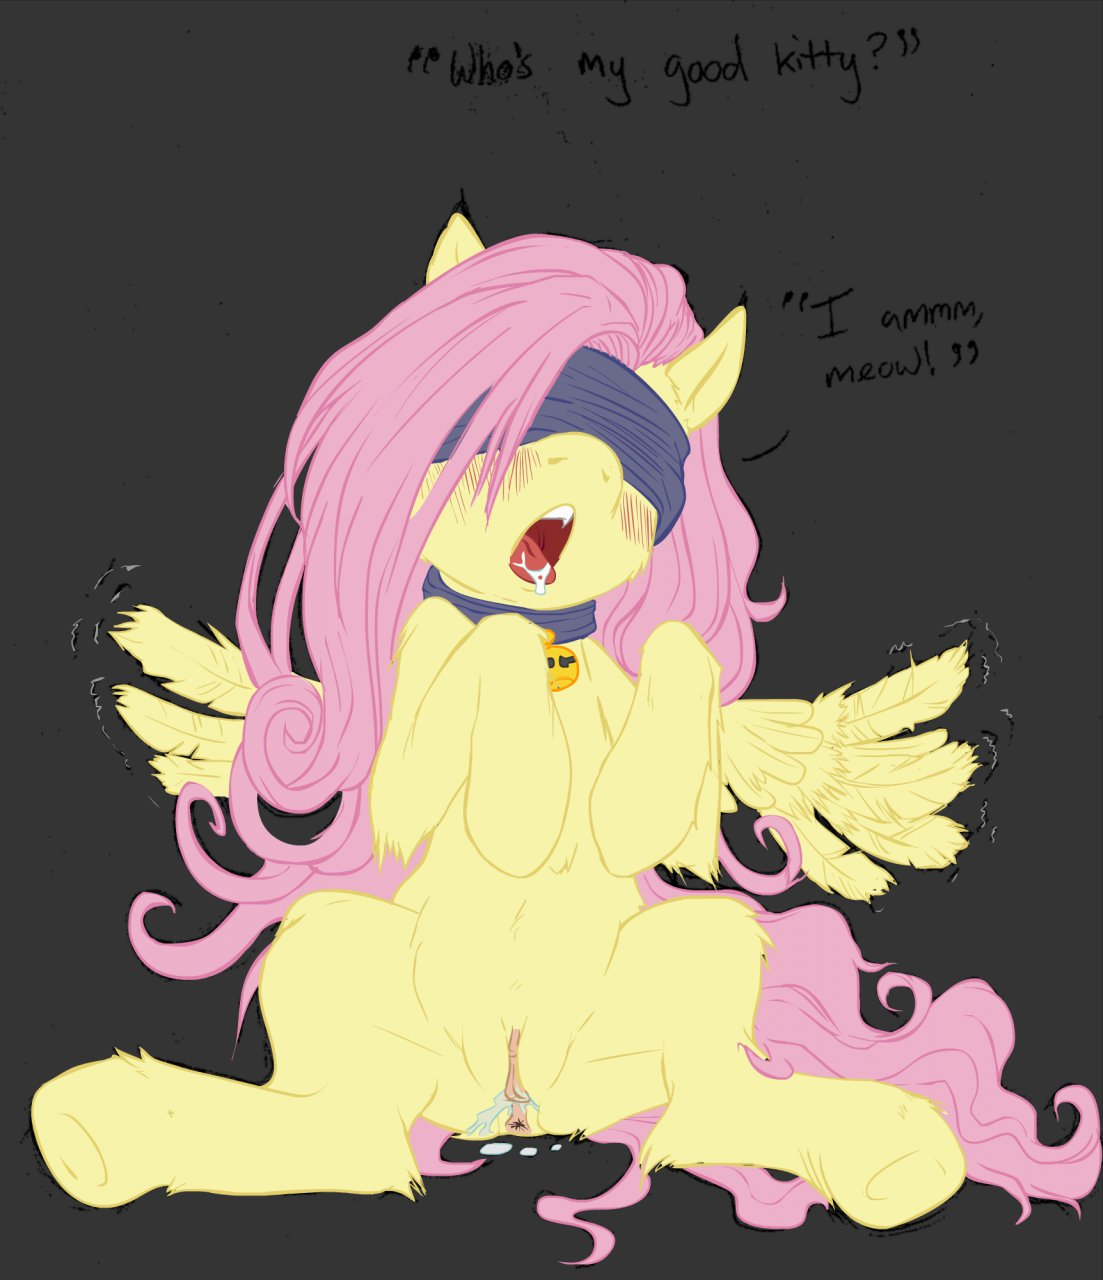 little my fluttershy pony Boris the wolf bendy and the ink machine